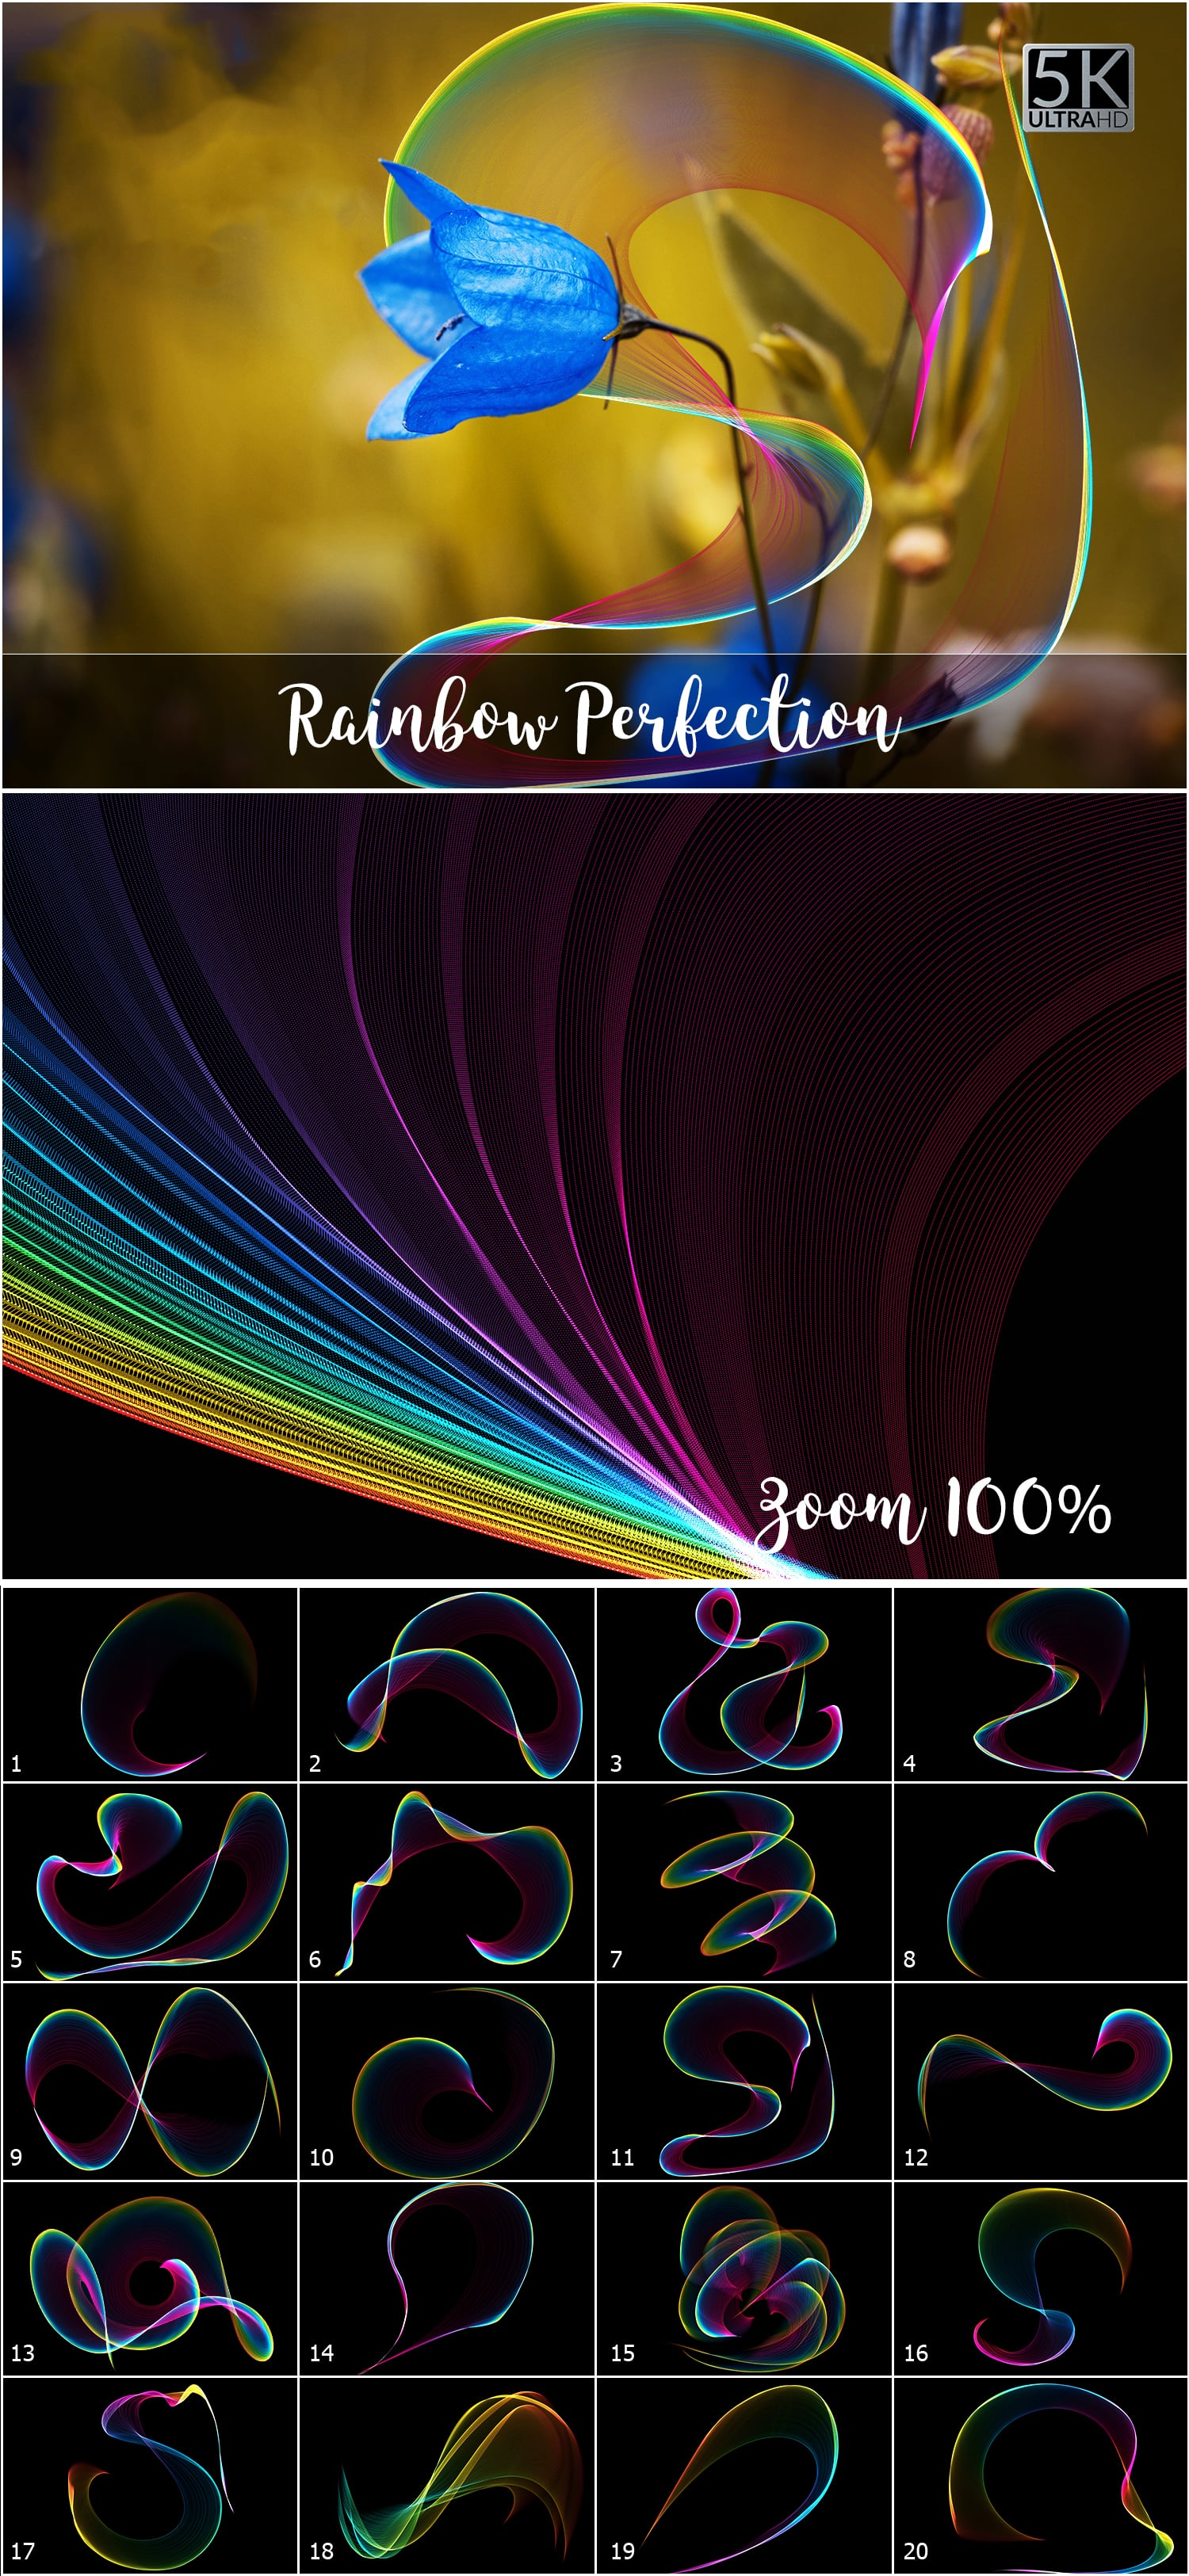 1053 Spectacular Overlays png - Only $18! - Rainbow Perfection